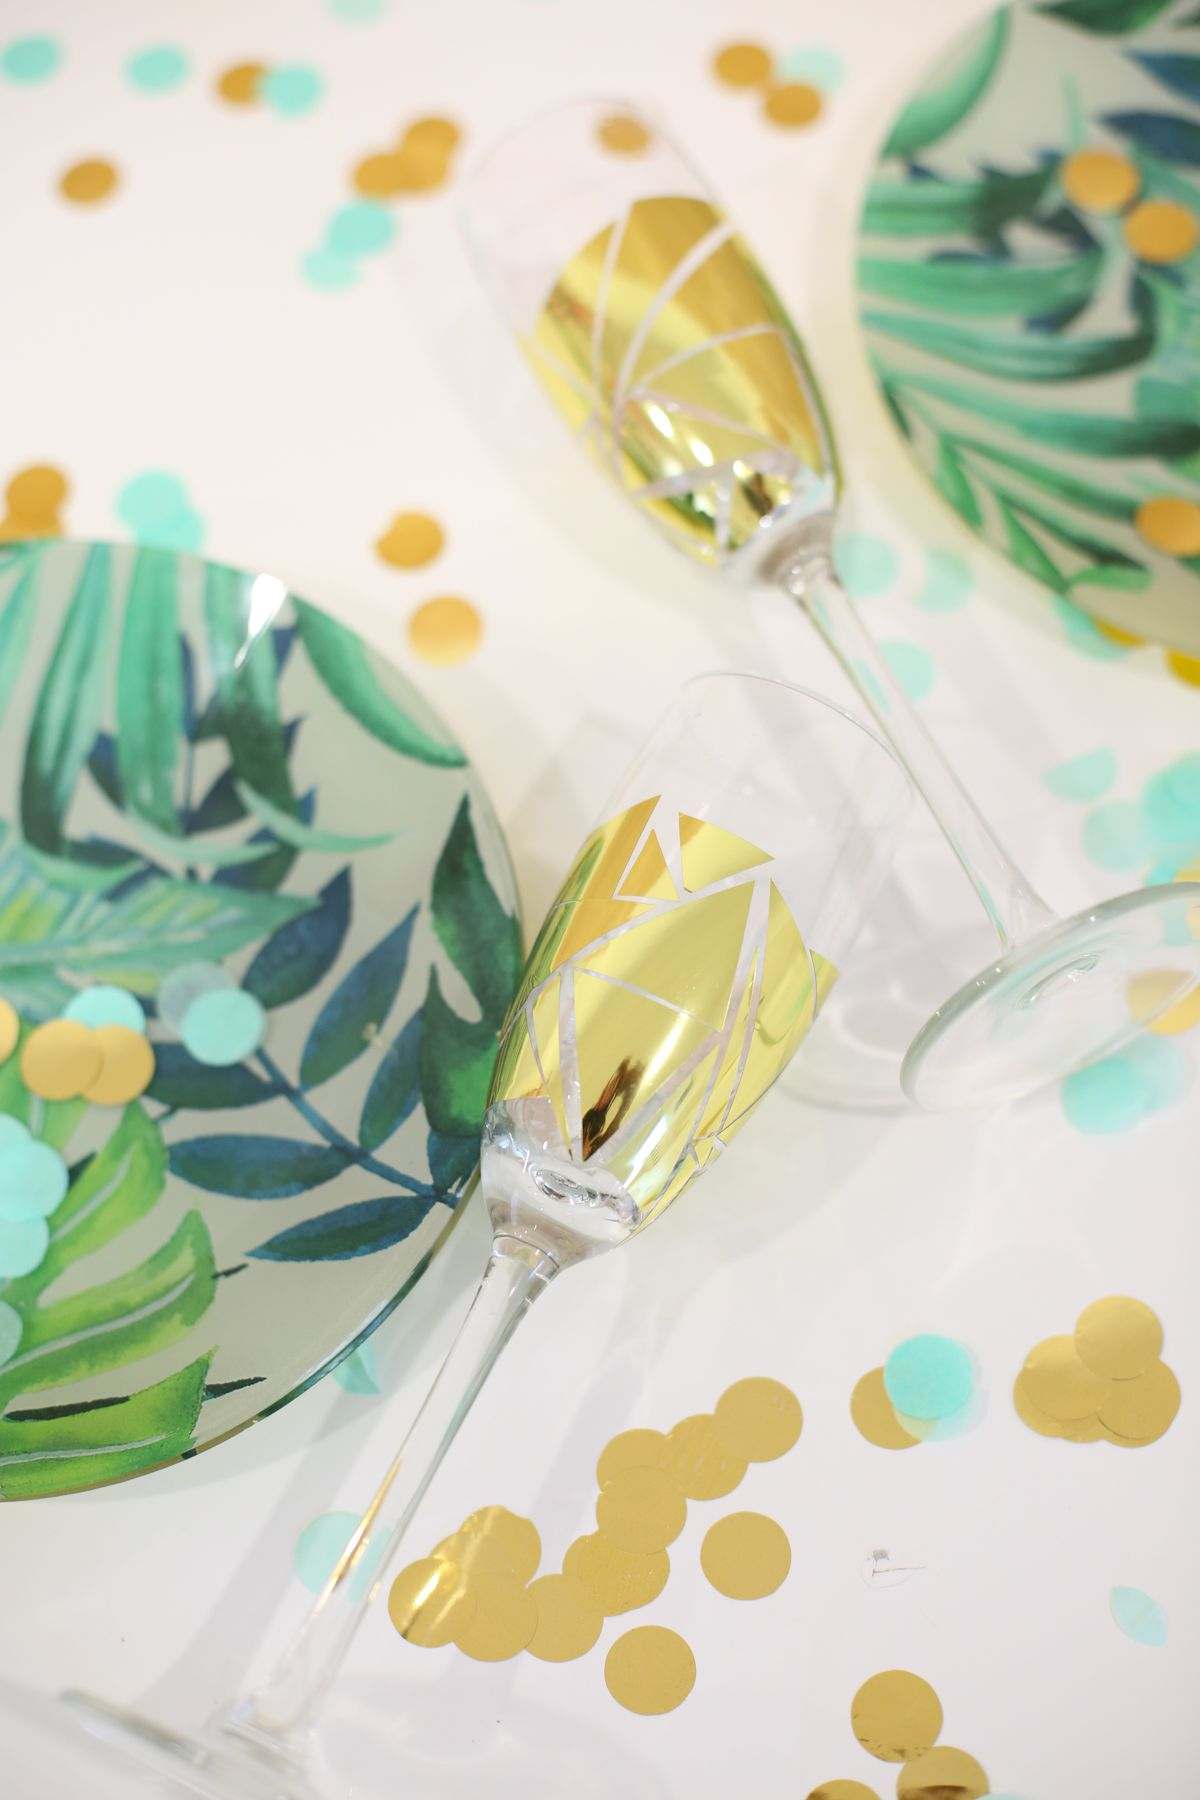 DIY Fun Patterned Champagne Flutes